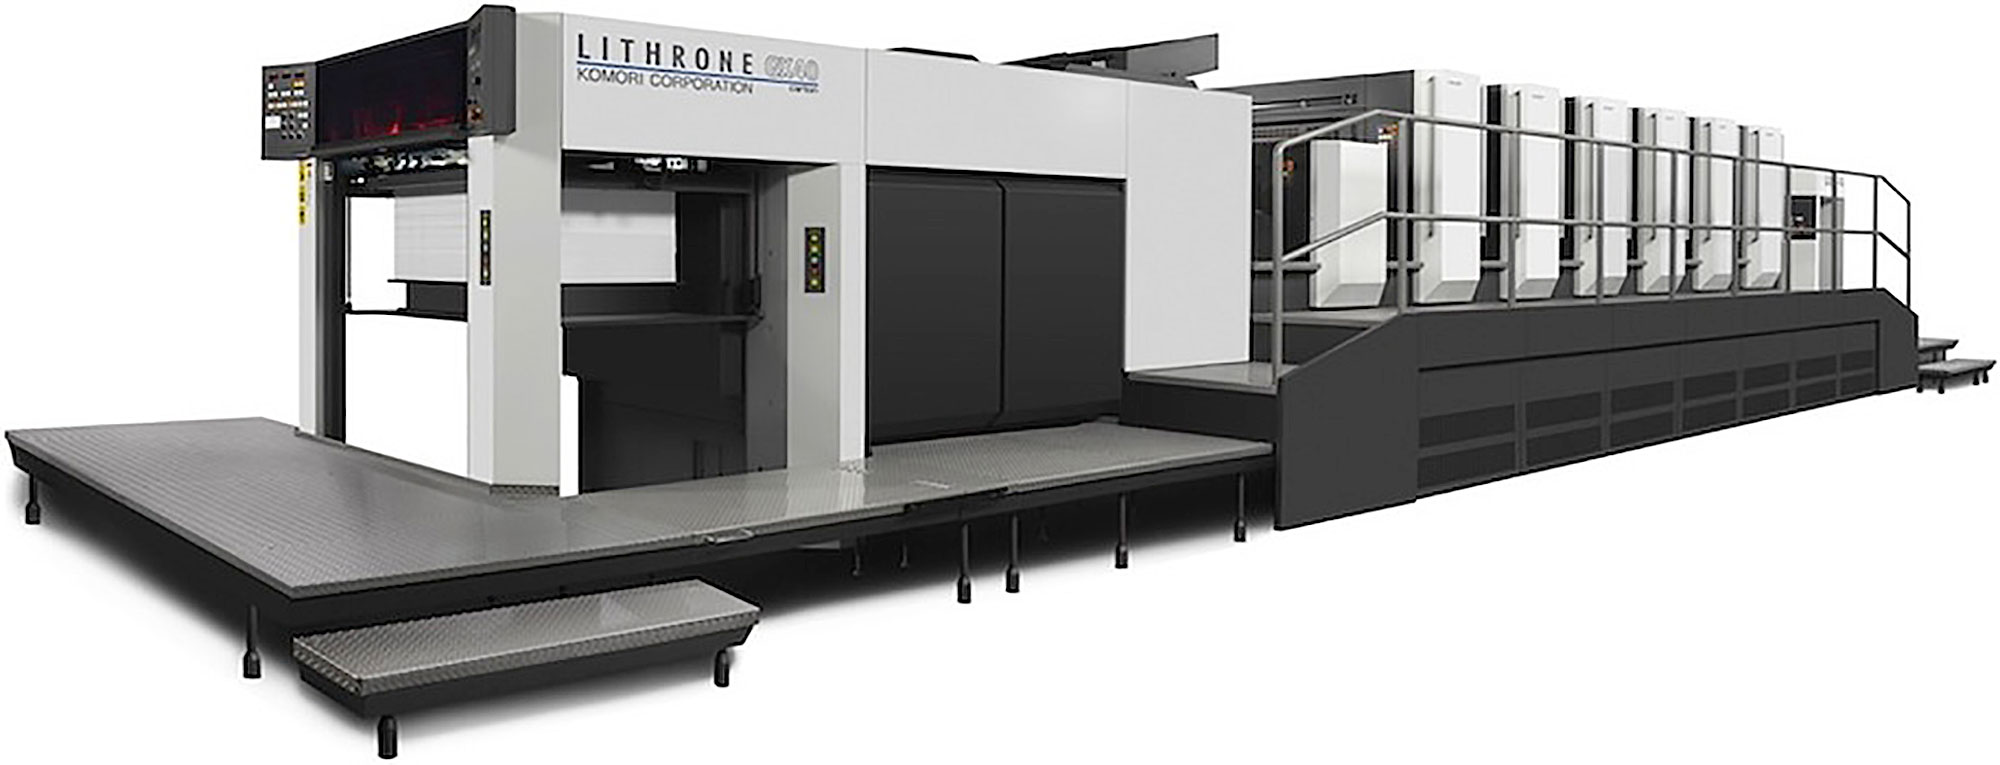 Komori-Lithrone-GX-slider